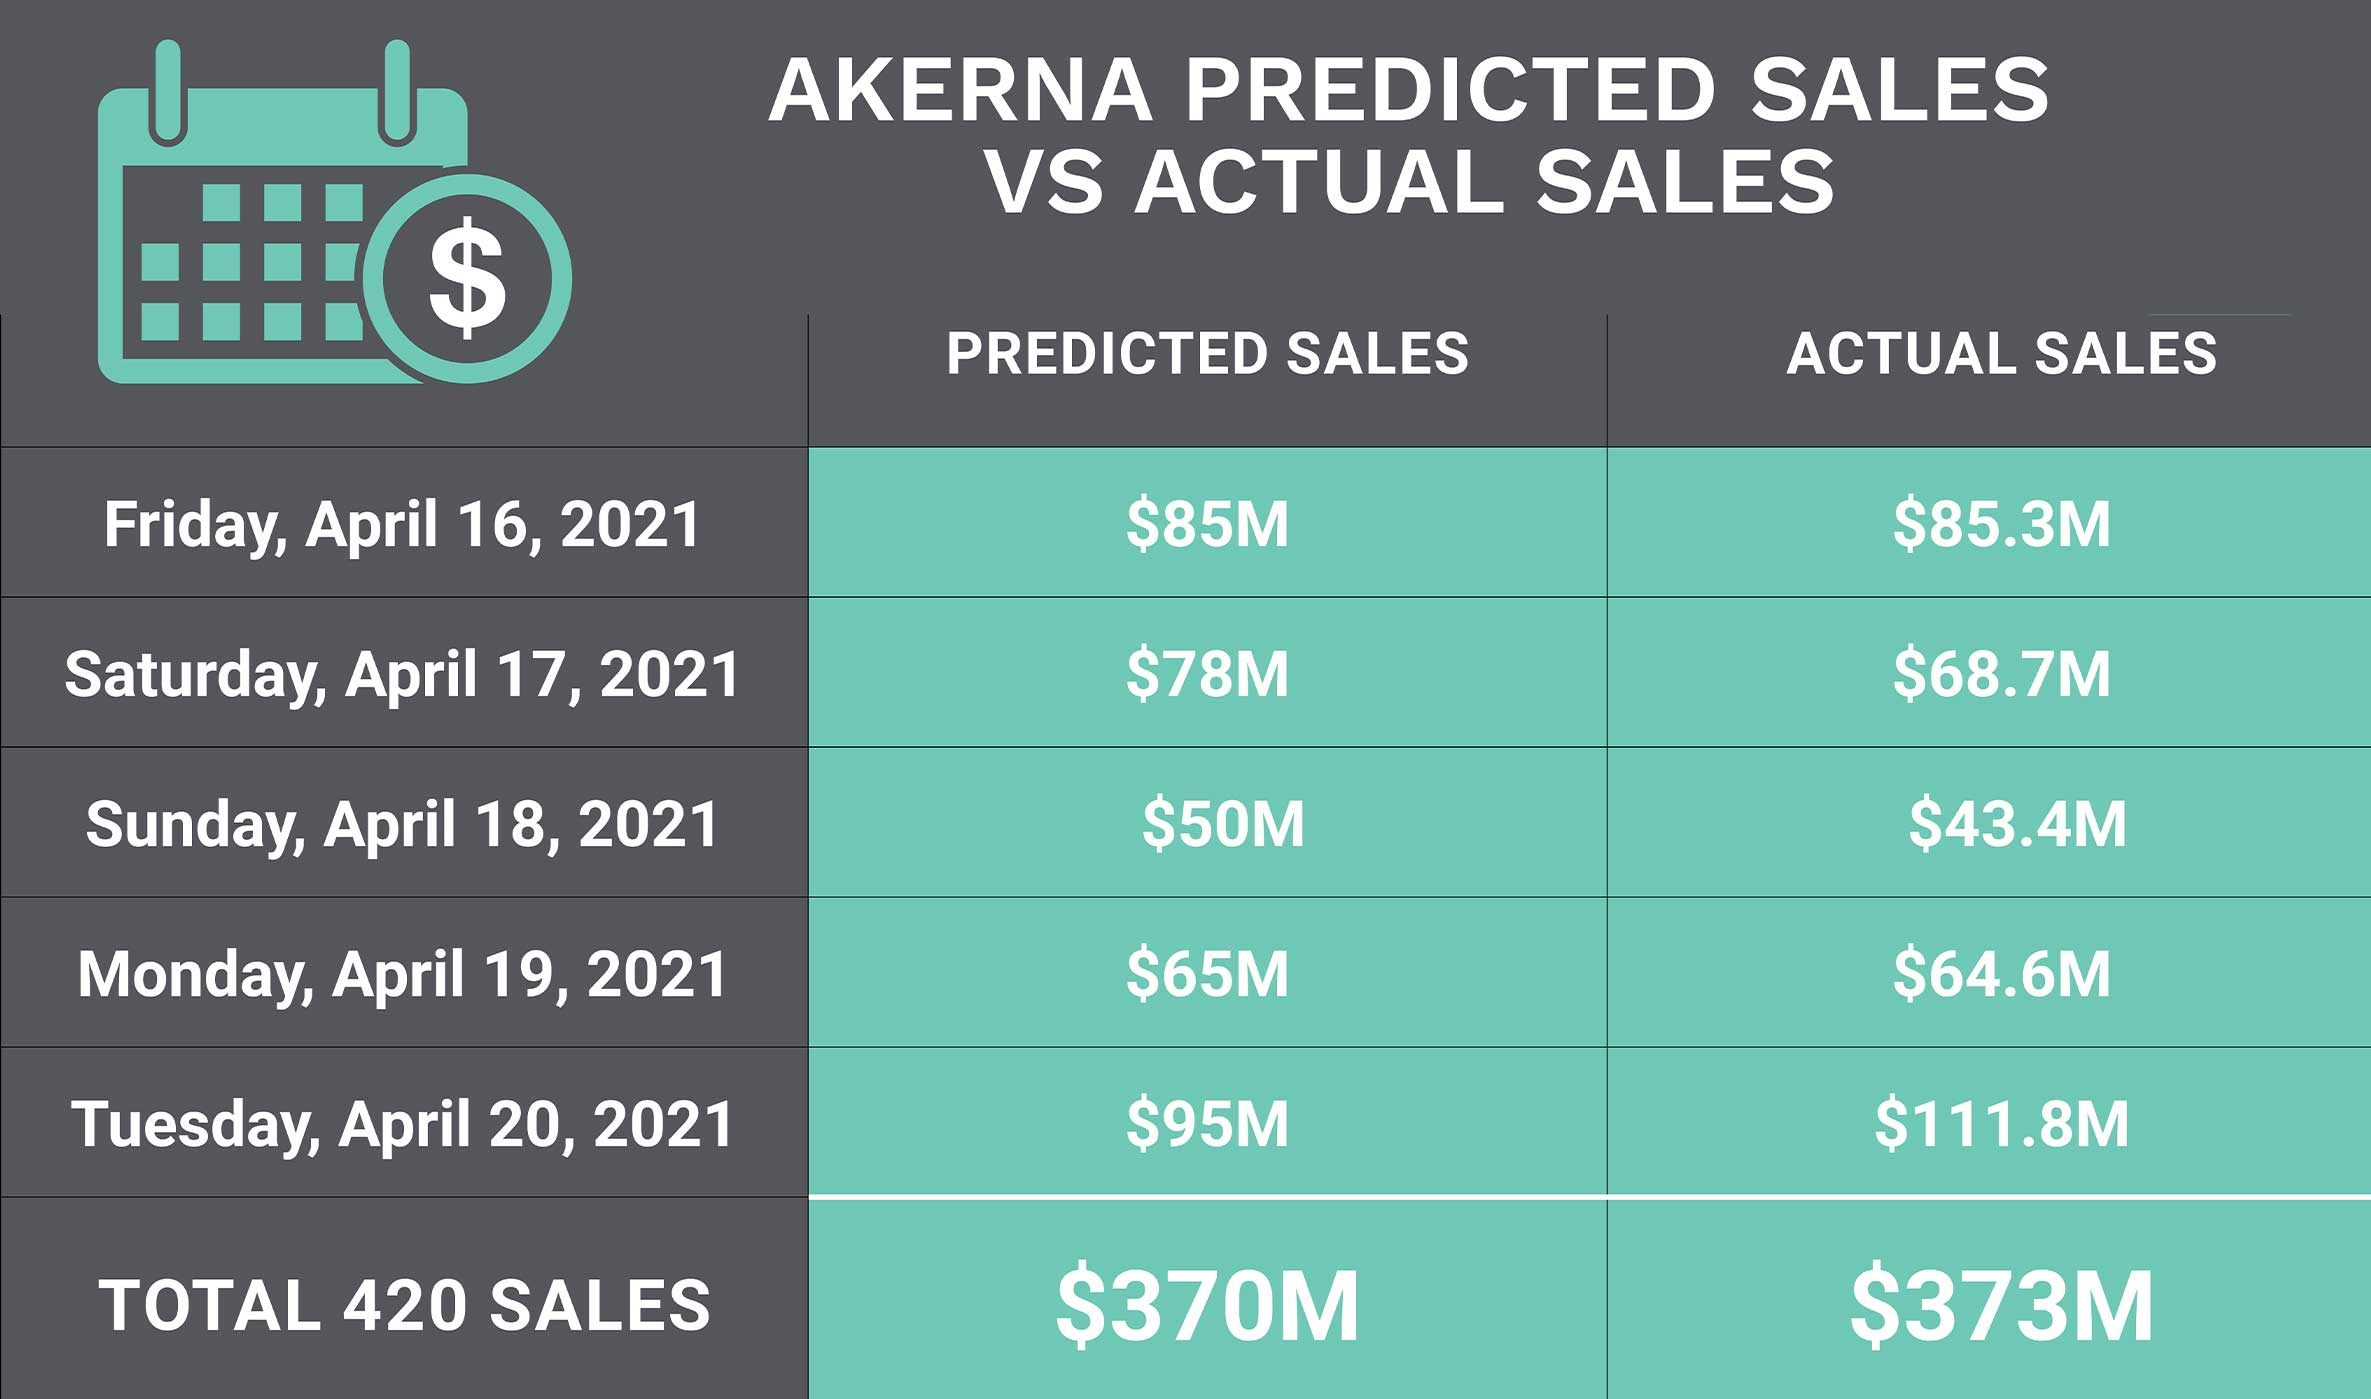 Akerna's 420 sales predictions vs. actuals